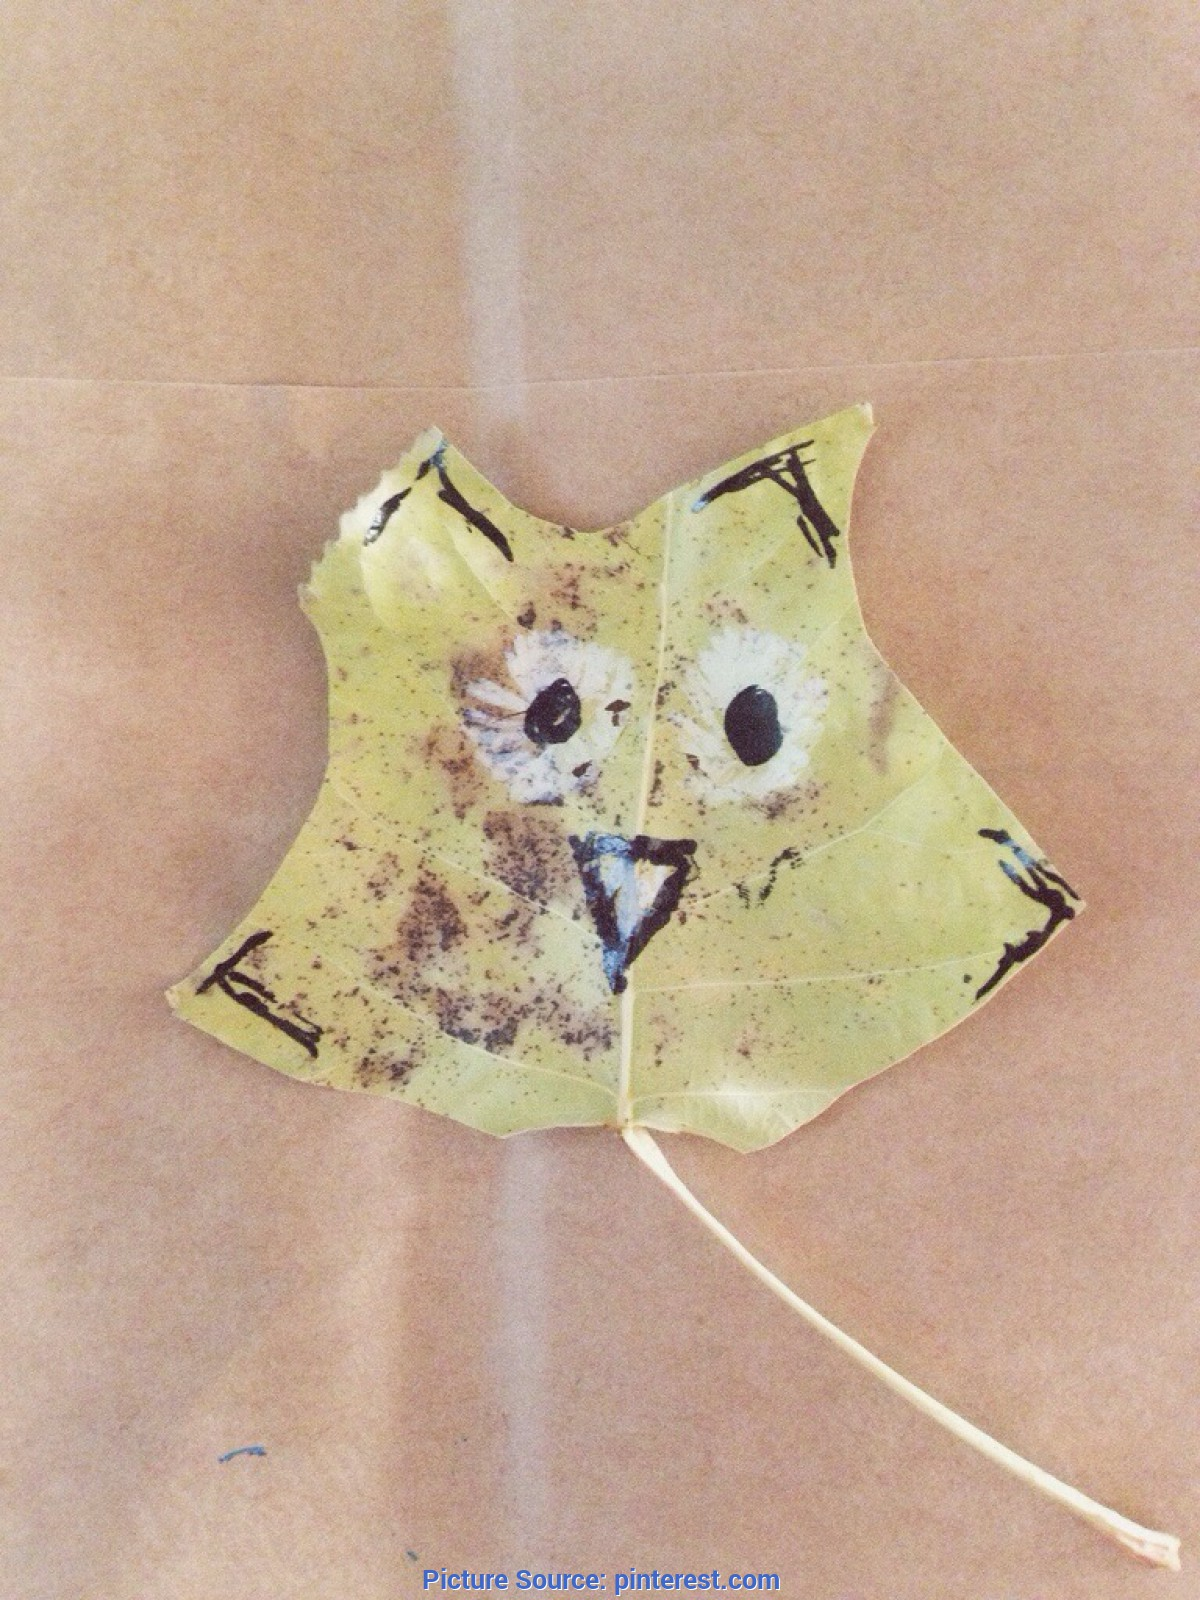 Simple Fall Animal Crafts Leaves And Animals - Crafts For Fall / Autumn | Other | Pinteres